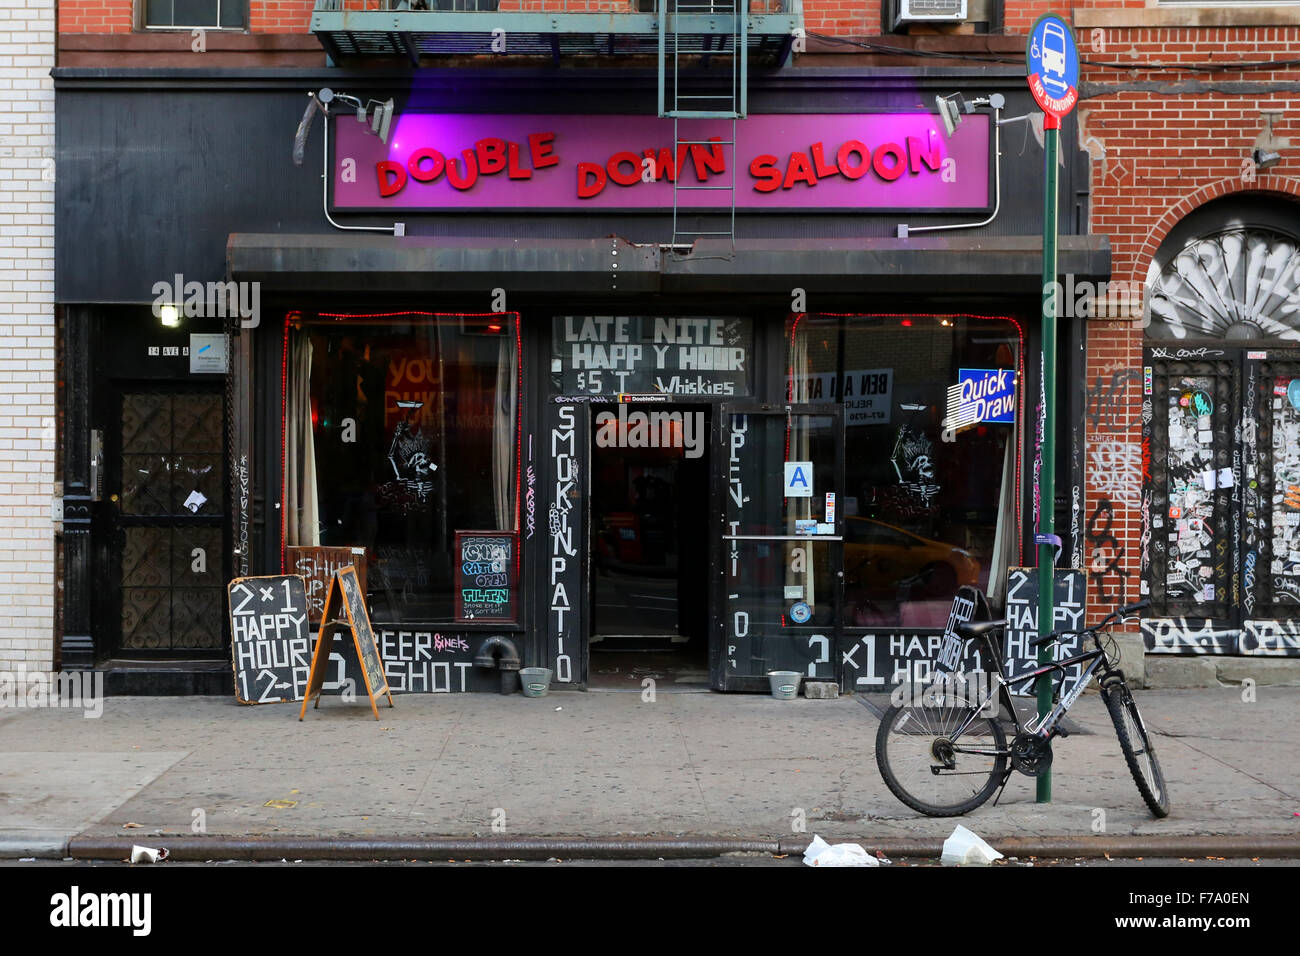 Double Down Saloon, 14 Ave A, New York, NY - Stock Image